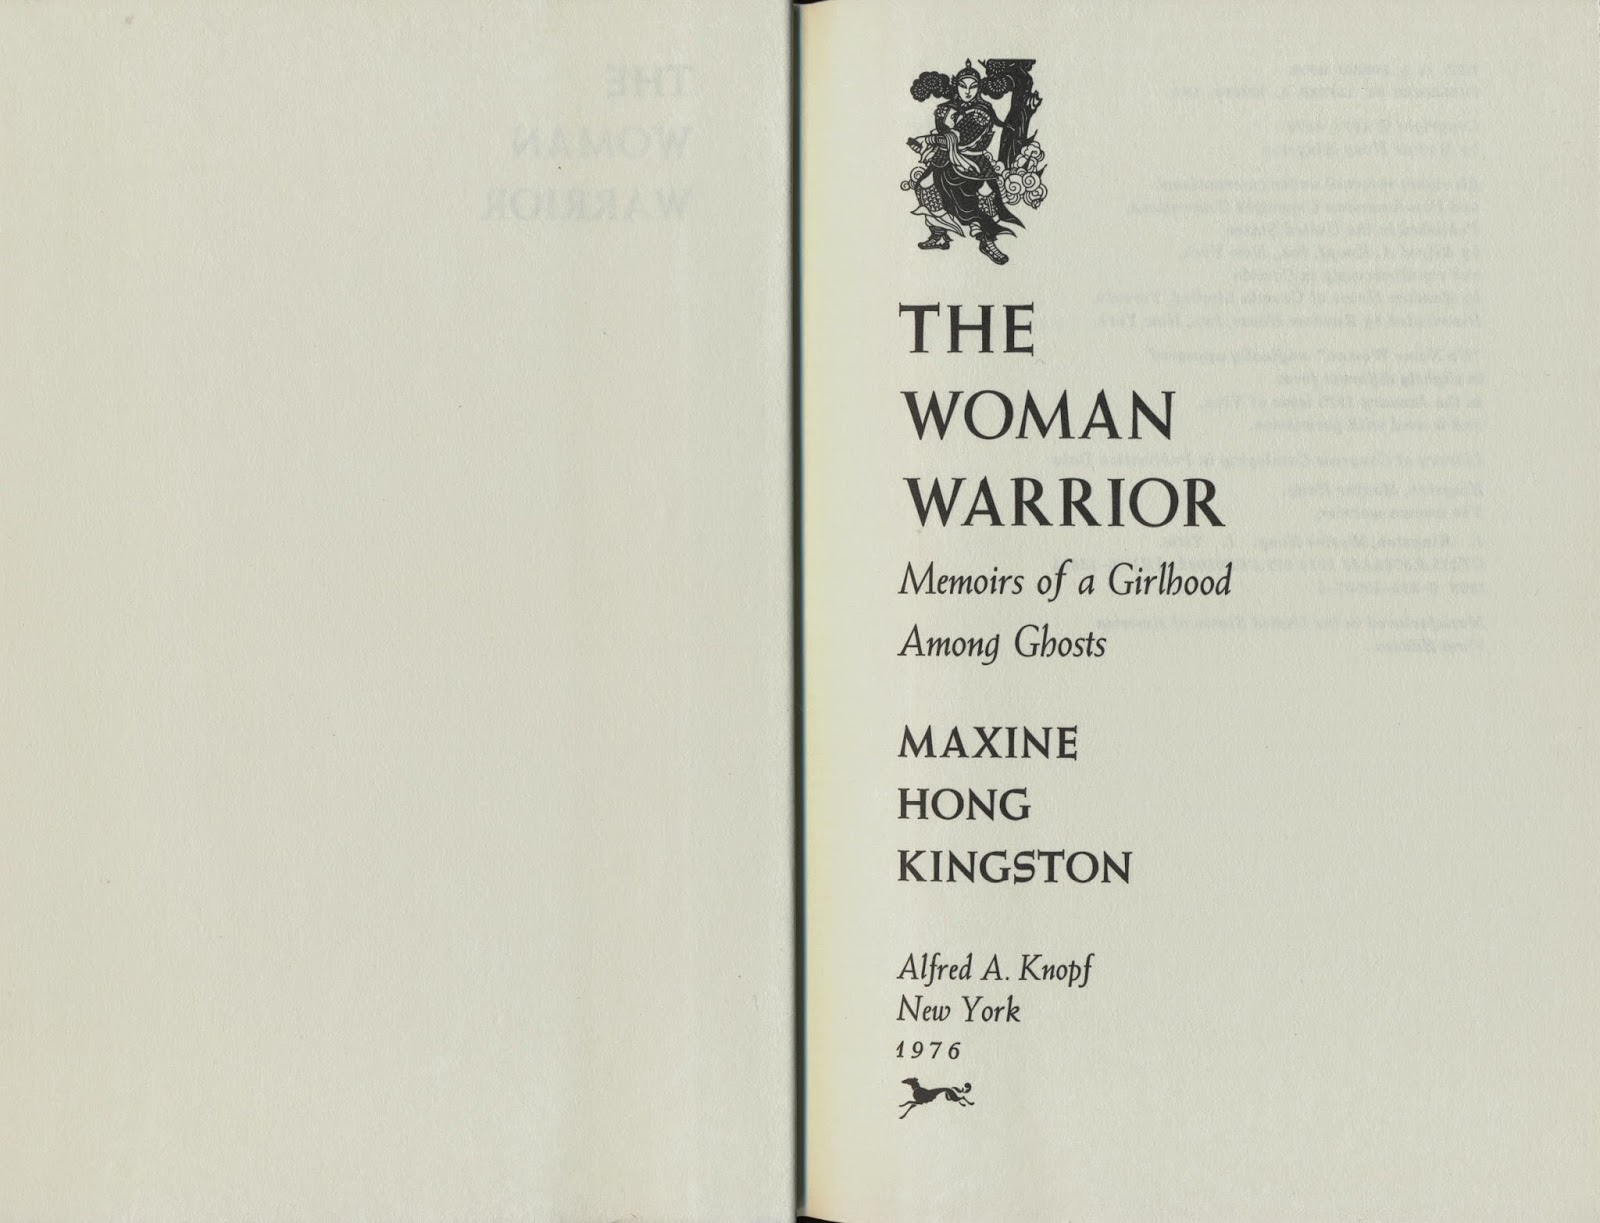 a literary analysis of no name woman by maxine hong kingston The woman warrior study guide contains a biography of maxine kingston, literature essays, quiz questions, major themes, characters, and a full summary and analysis about the woman warrior the woman warrior summary.